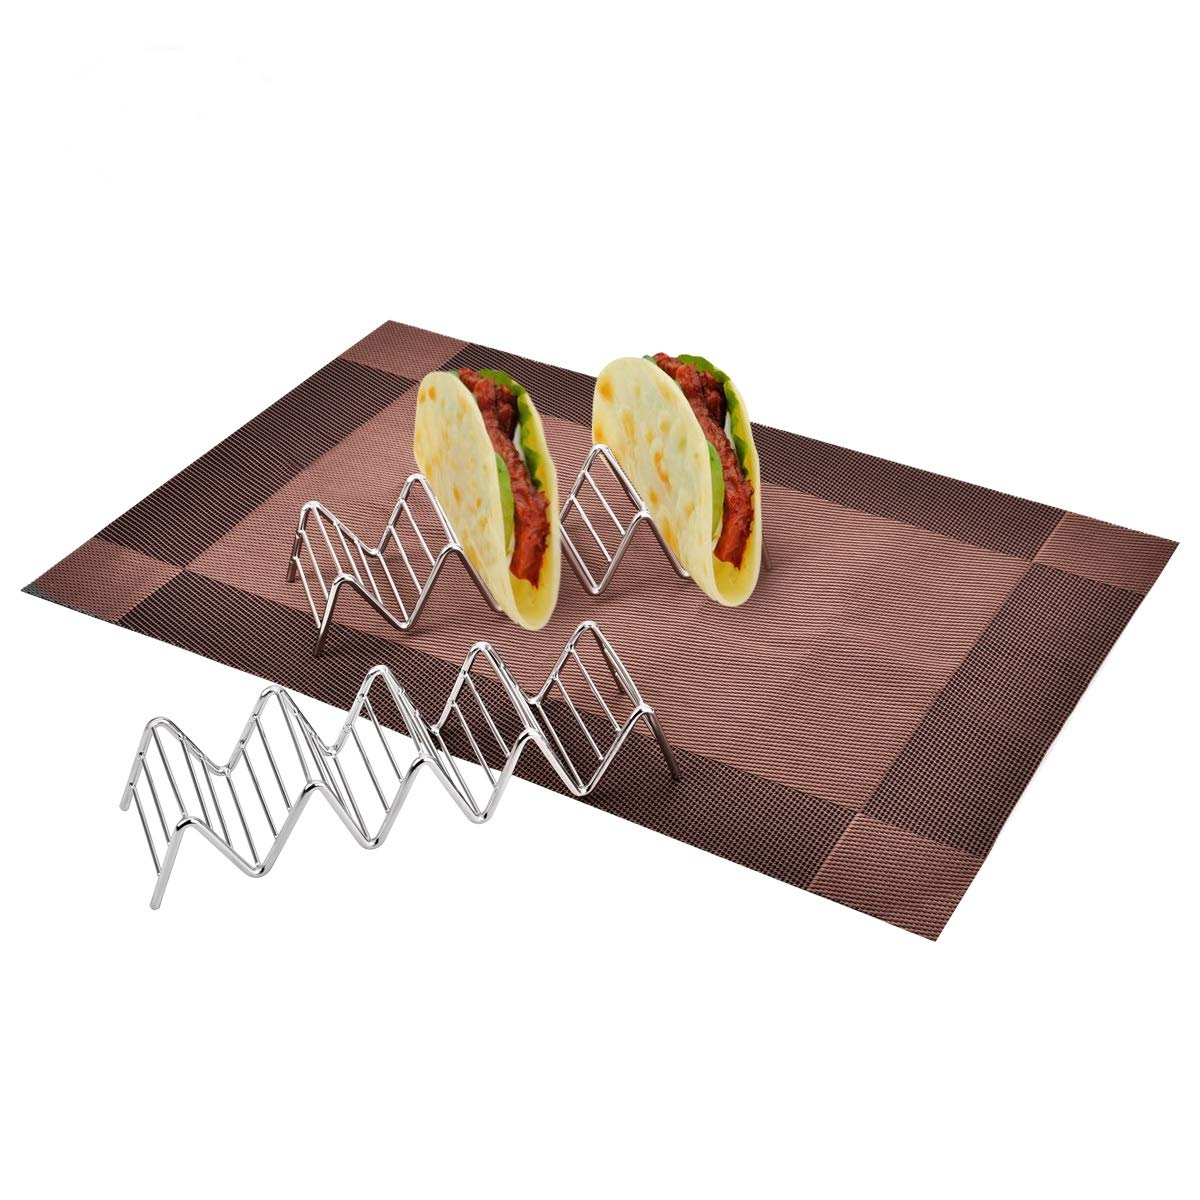 Taco stand, Newroad Stainless Steel Taco holders, 5 Taco Rack Tray with NON-SLIP MAT - 2 pack